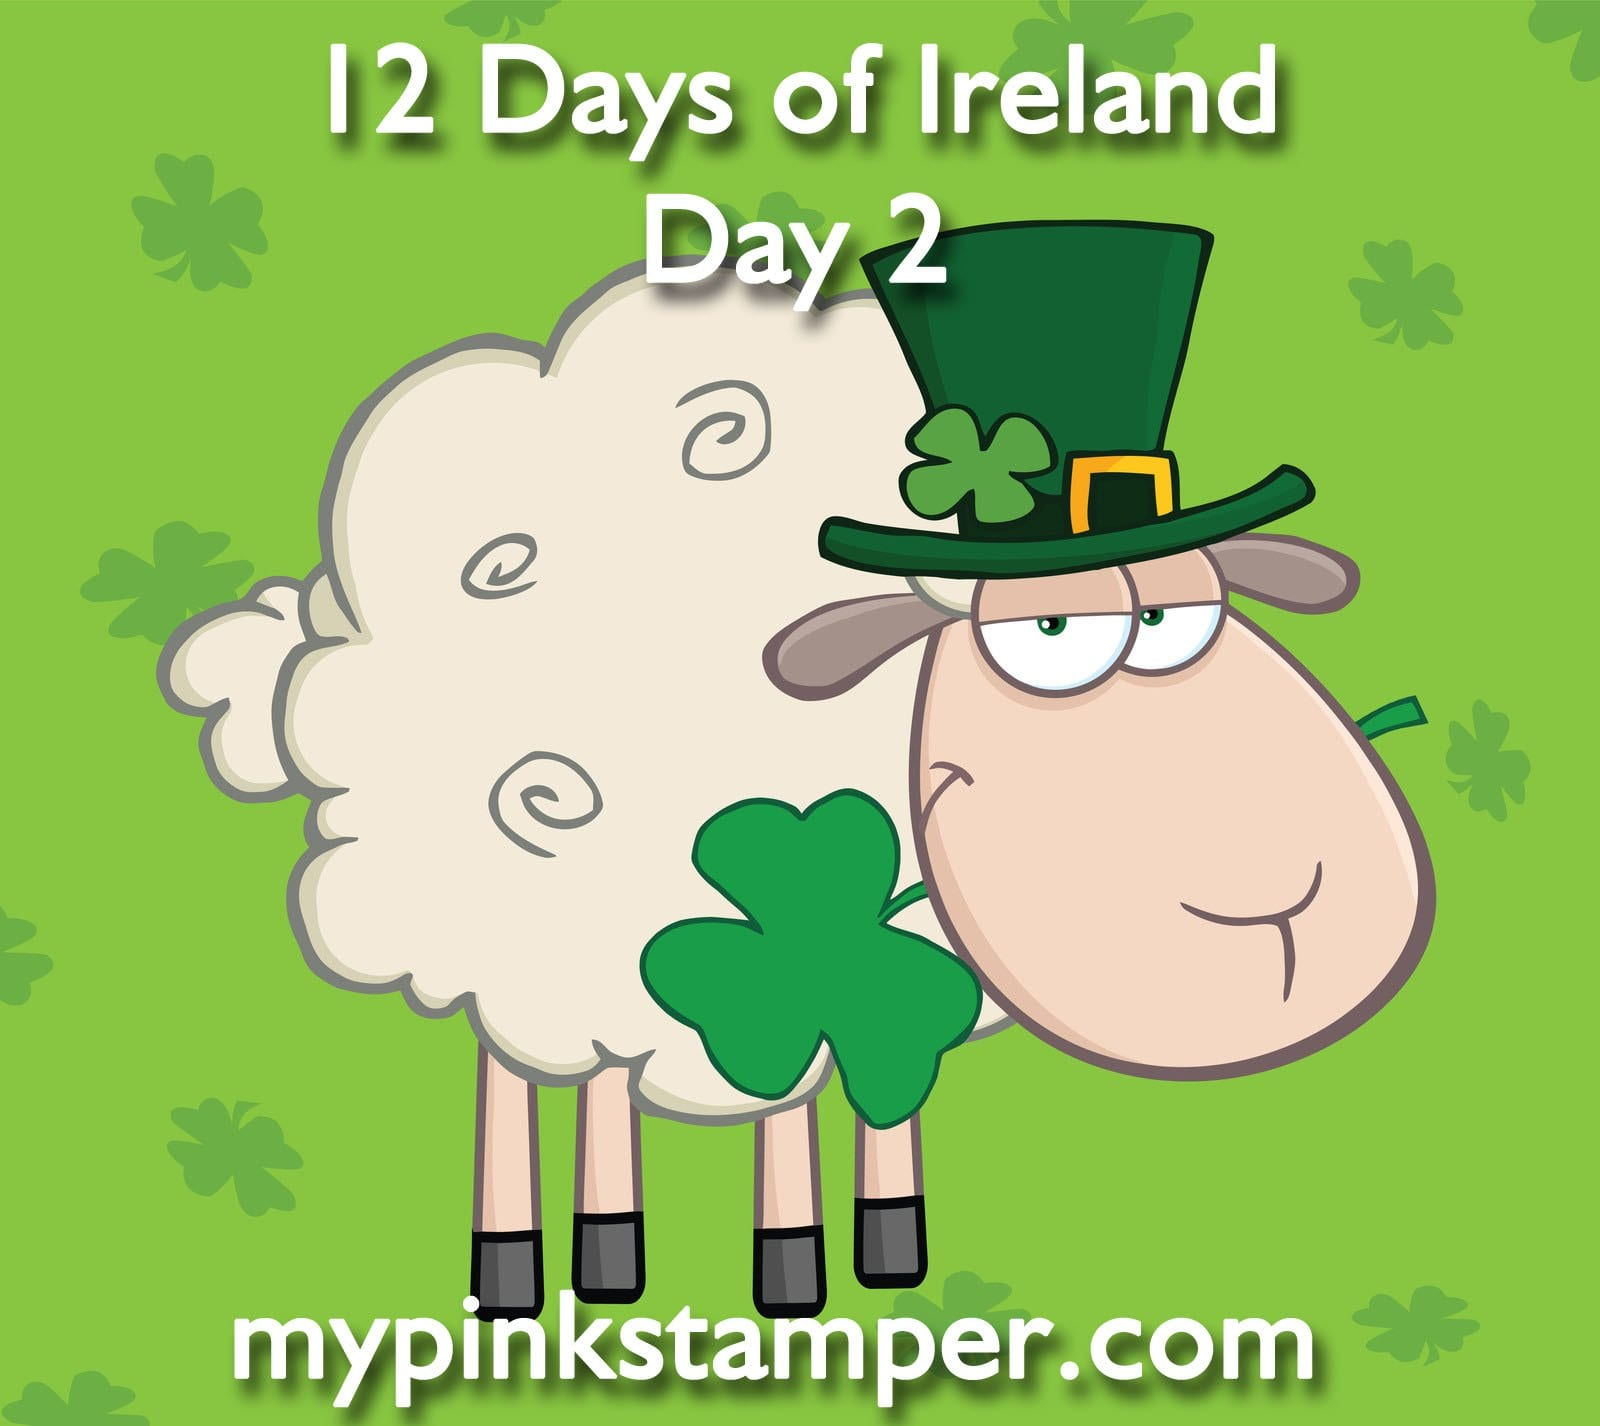 12 Days of Ireland – Day 2 Giveaway